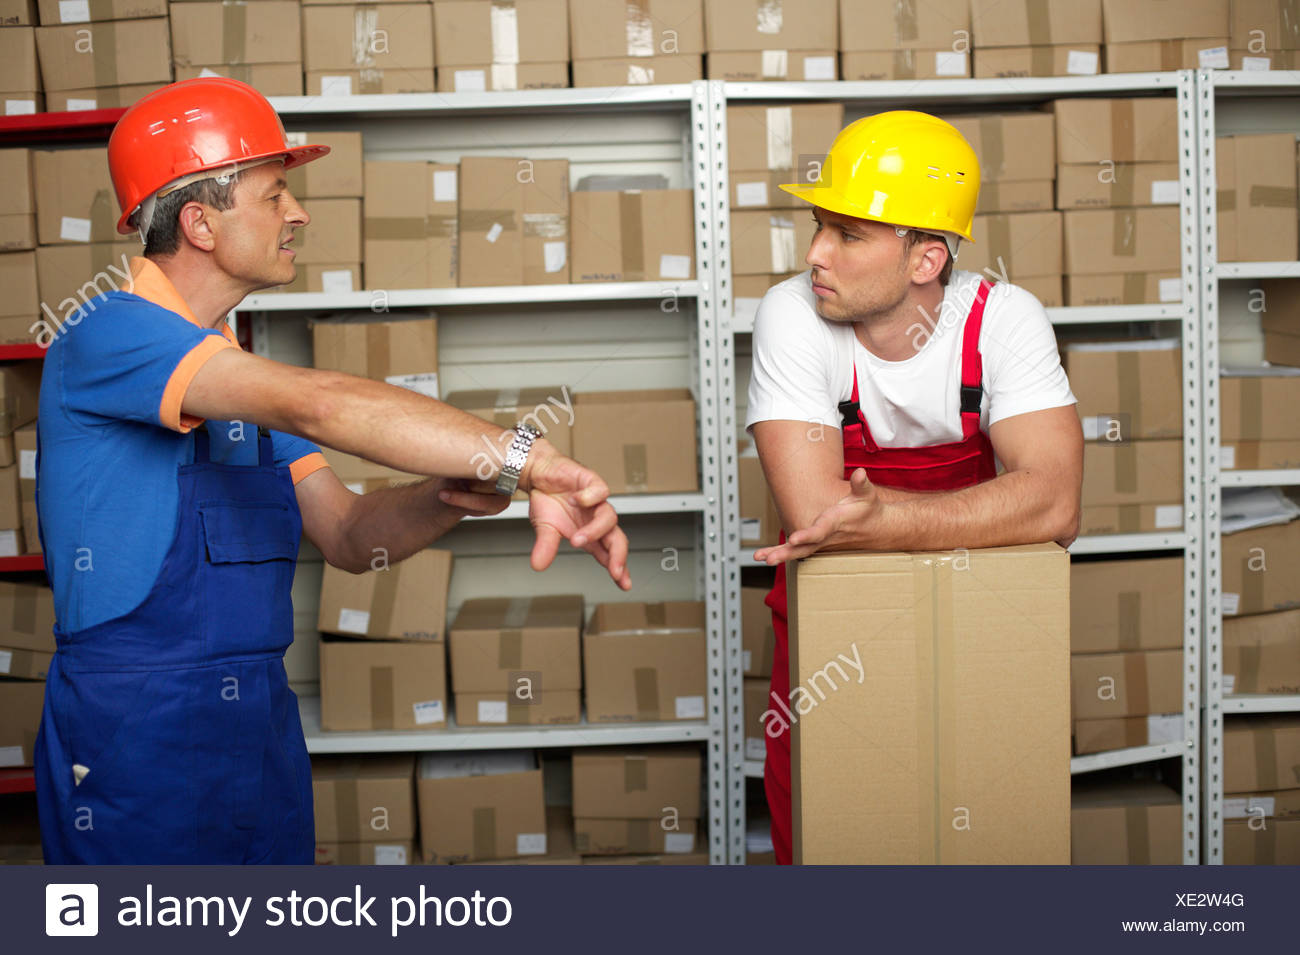 Two men in front of a shelf - Stock Image